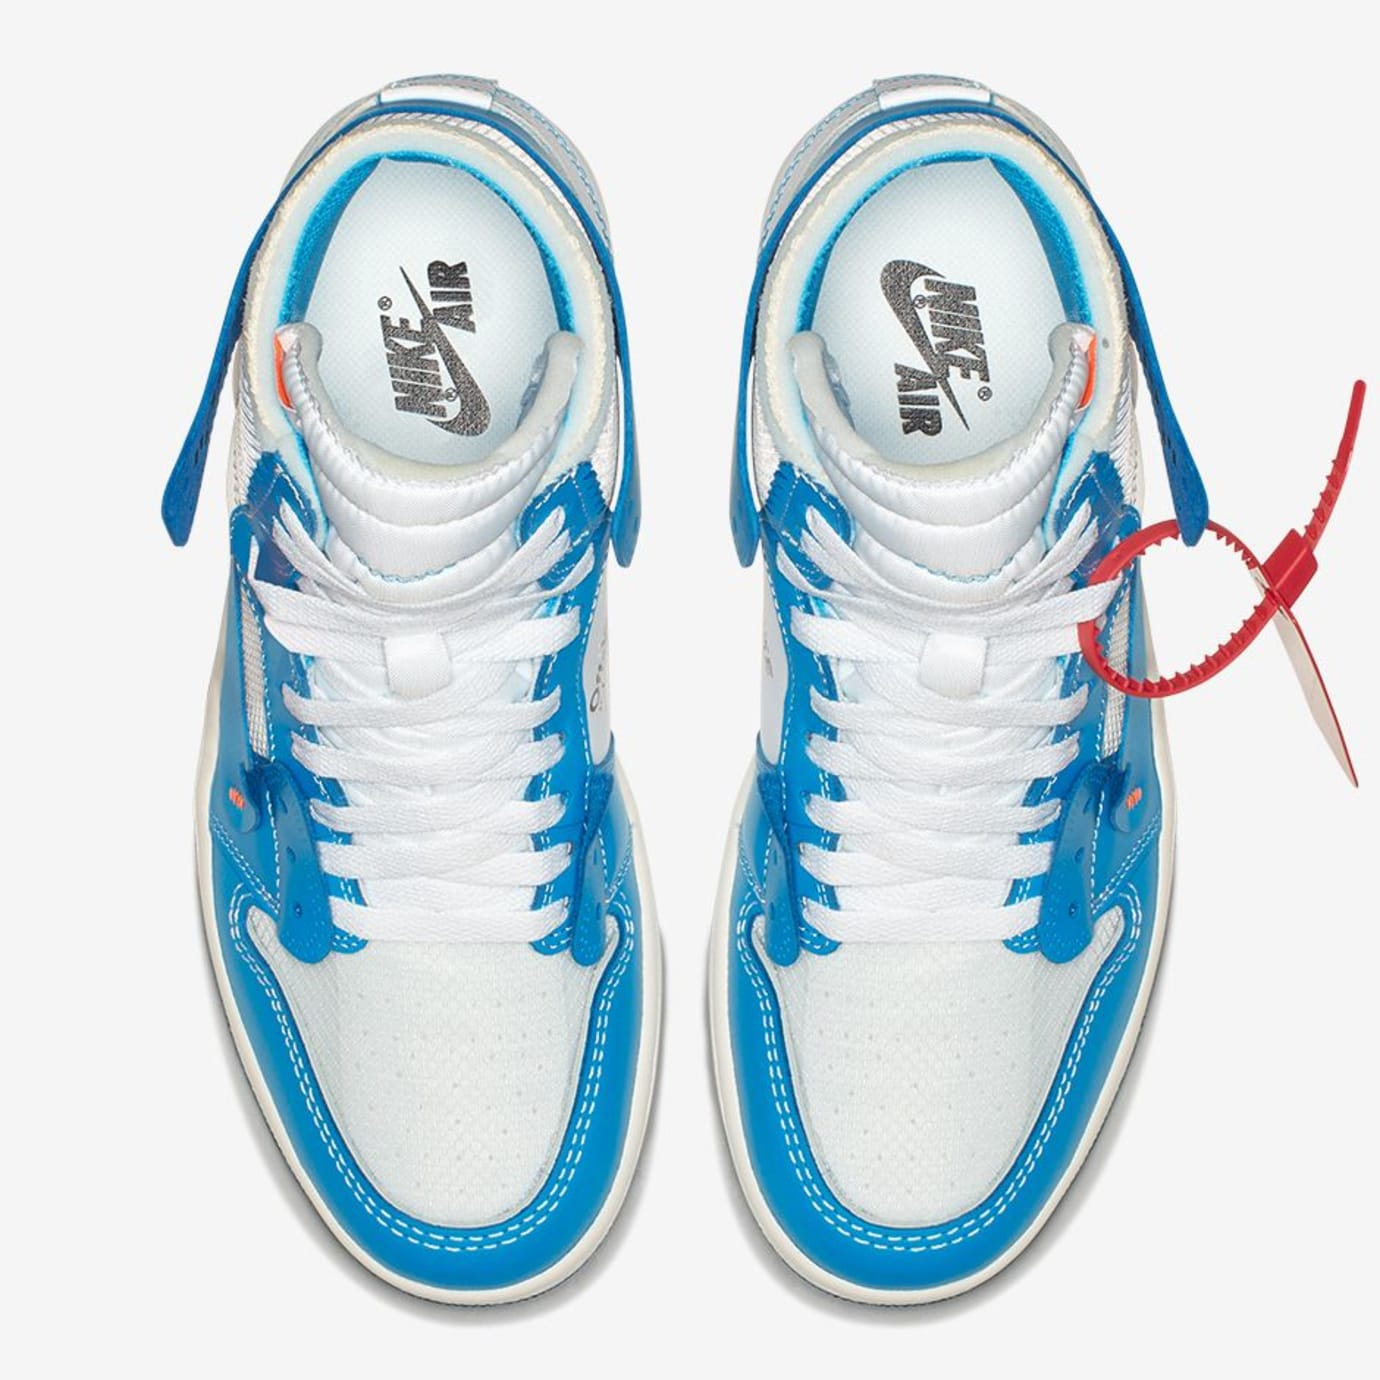 cee1a4996ad388 Image via Nike Off-White x Air Jordan 1 UNC Release Date AQ0818-148 Top